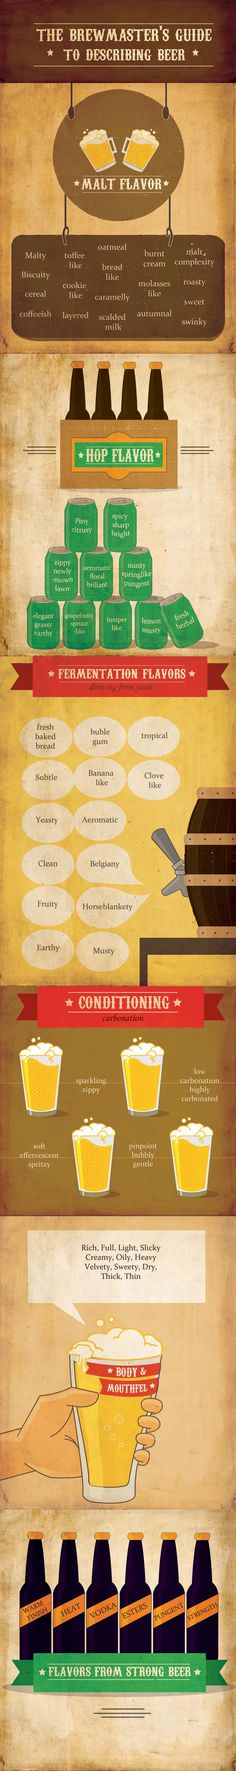 The Brewmaster's Guide to Describing Beer